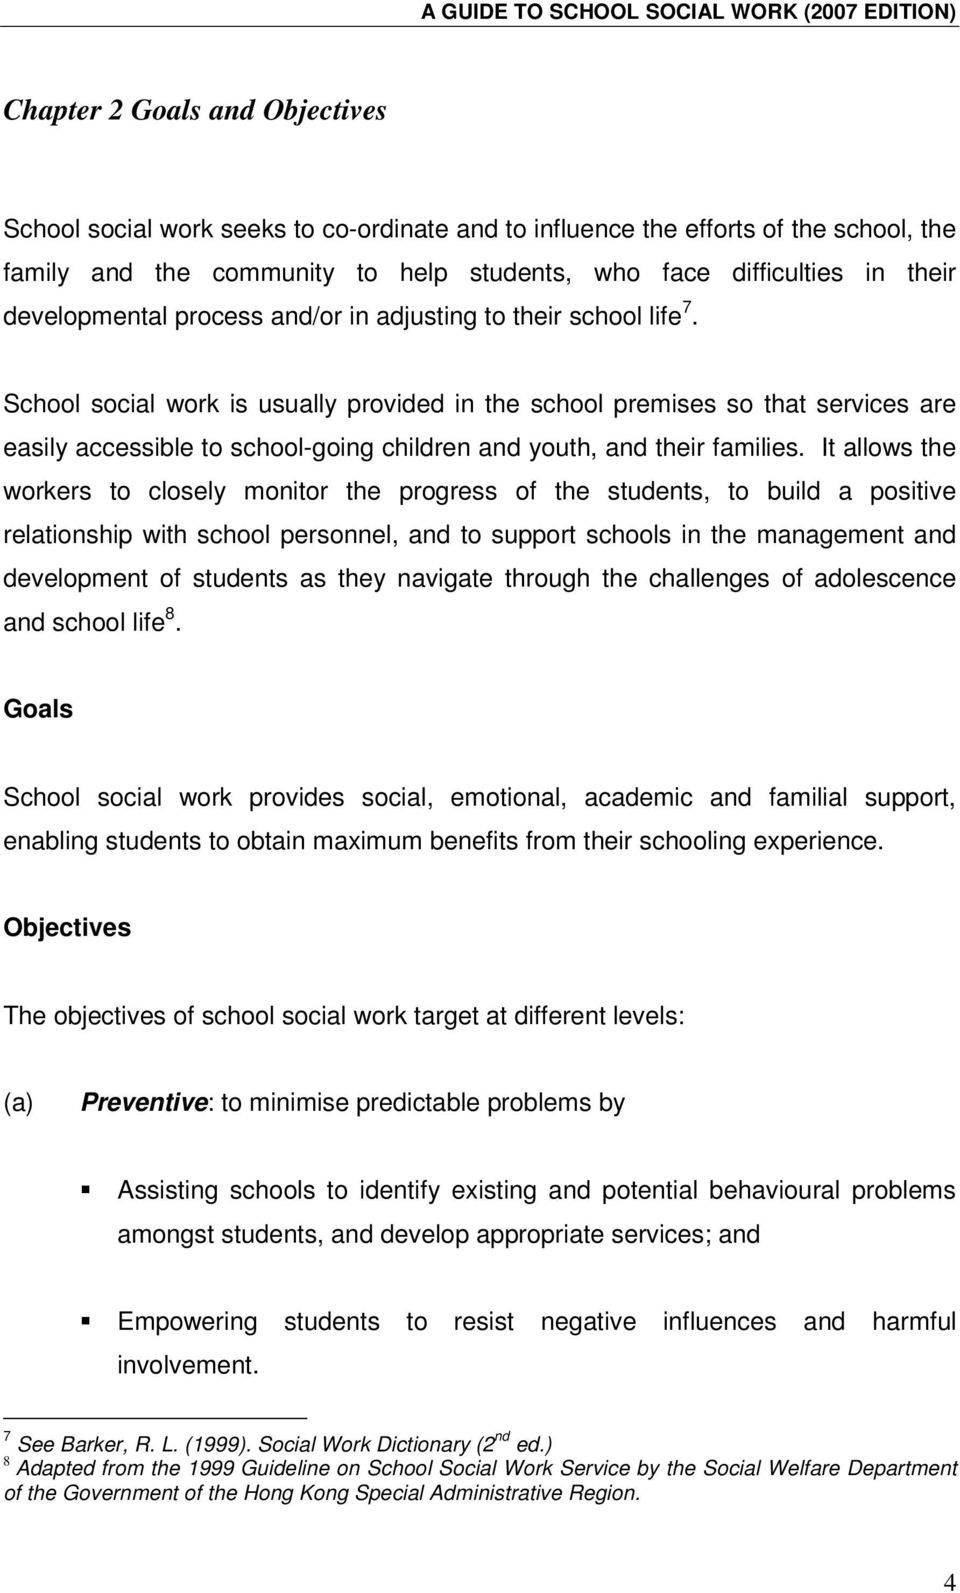 School social work is usually provided in the school premises so that services are easily accessible to school-going children and youth, and their families.